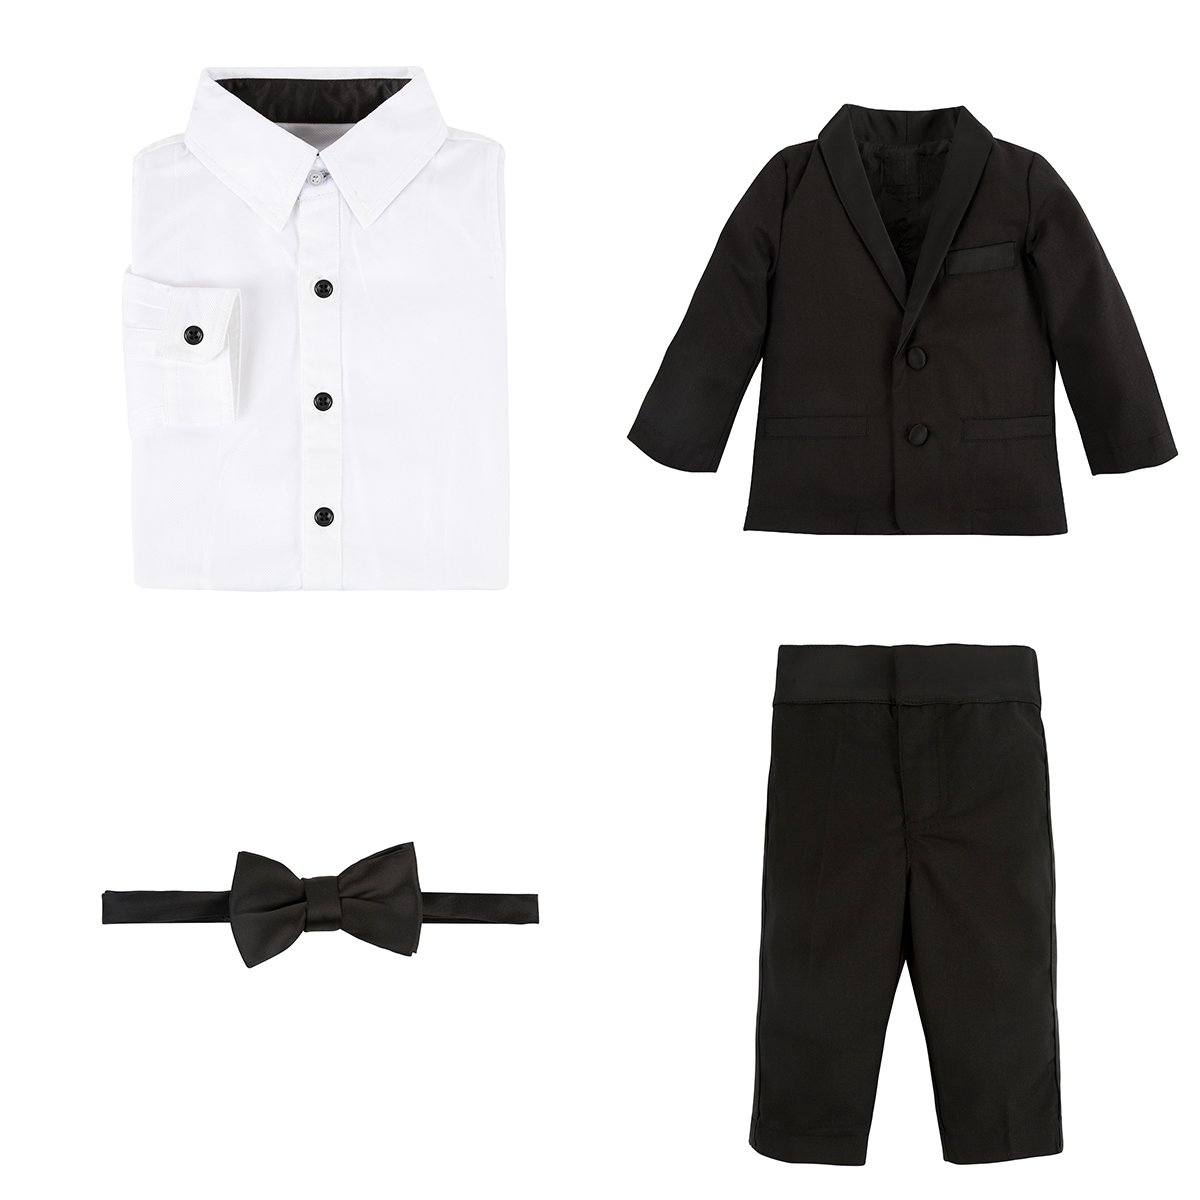 Andy & Evan Little Boys' Four Piece Tuxedo Suit Set, Black, 7 Years